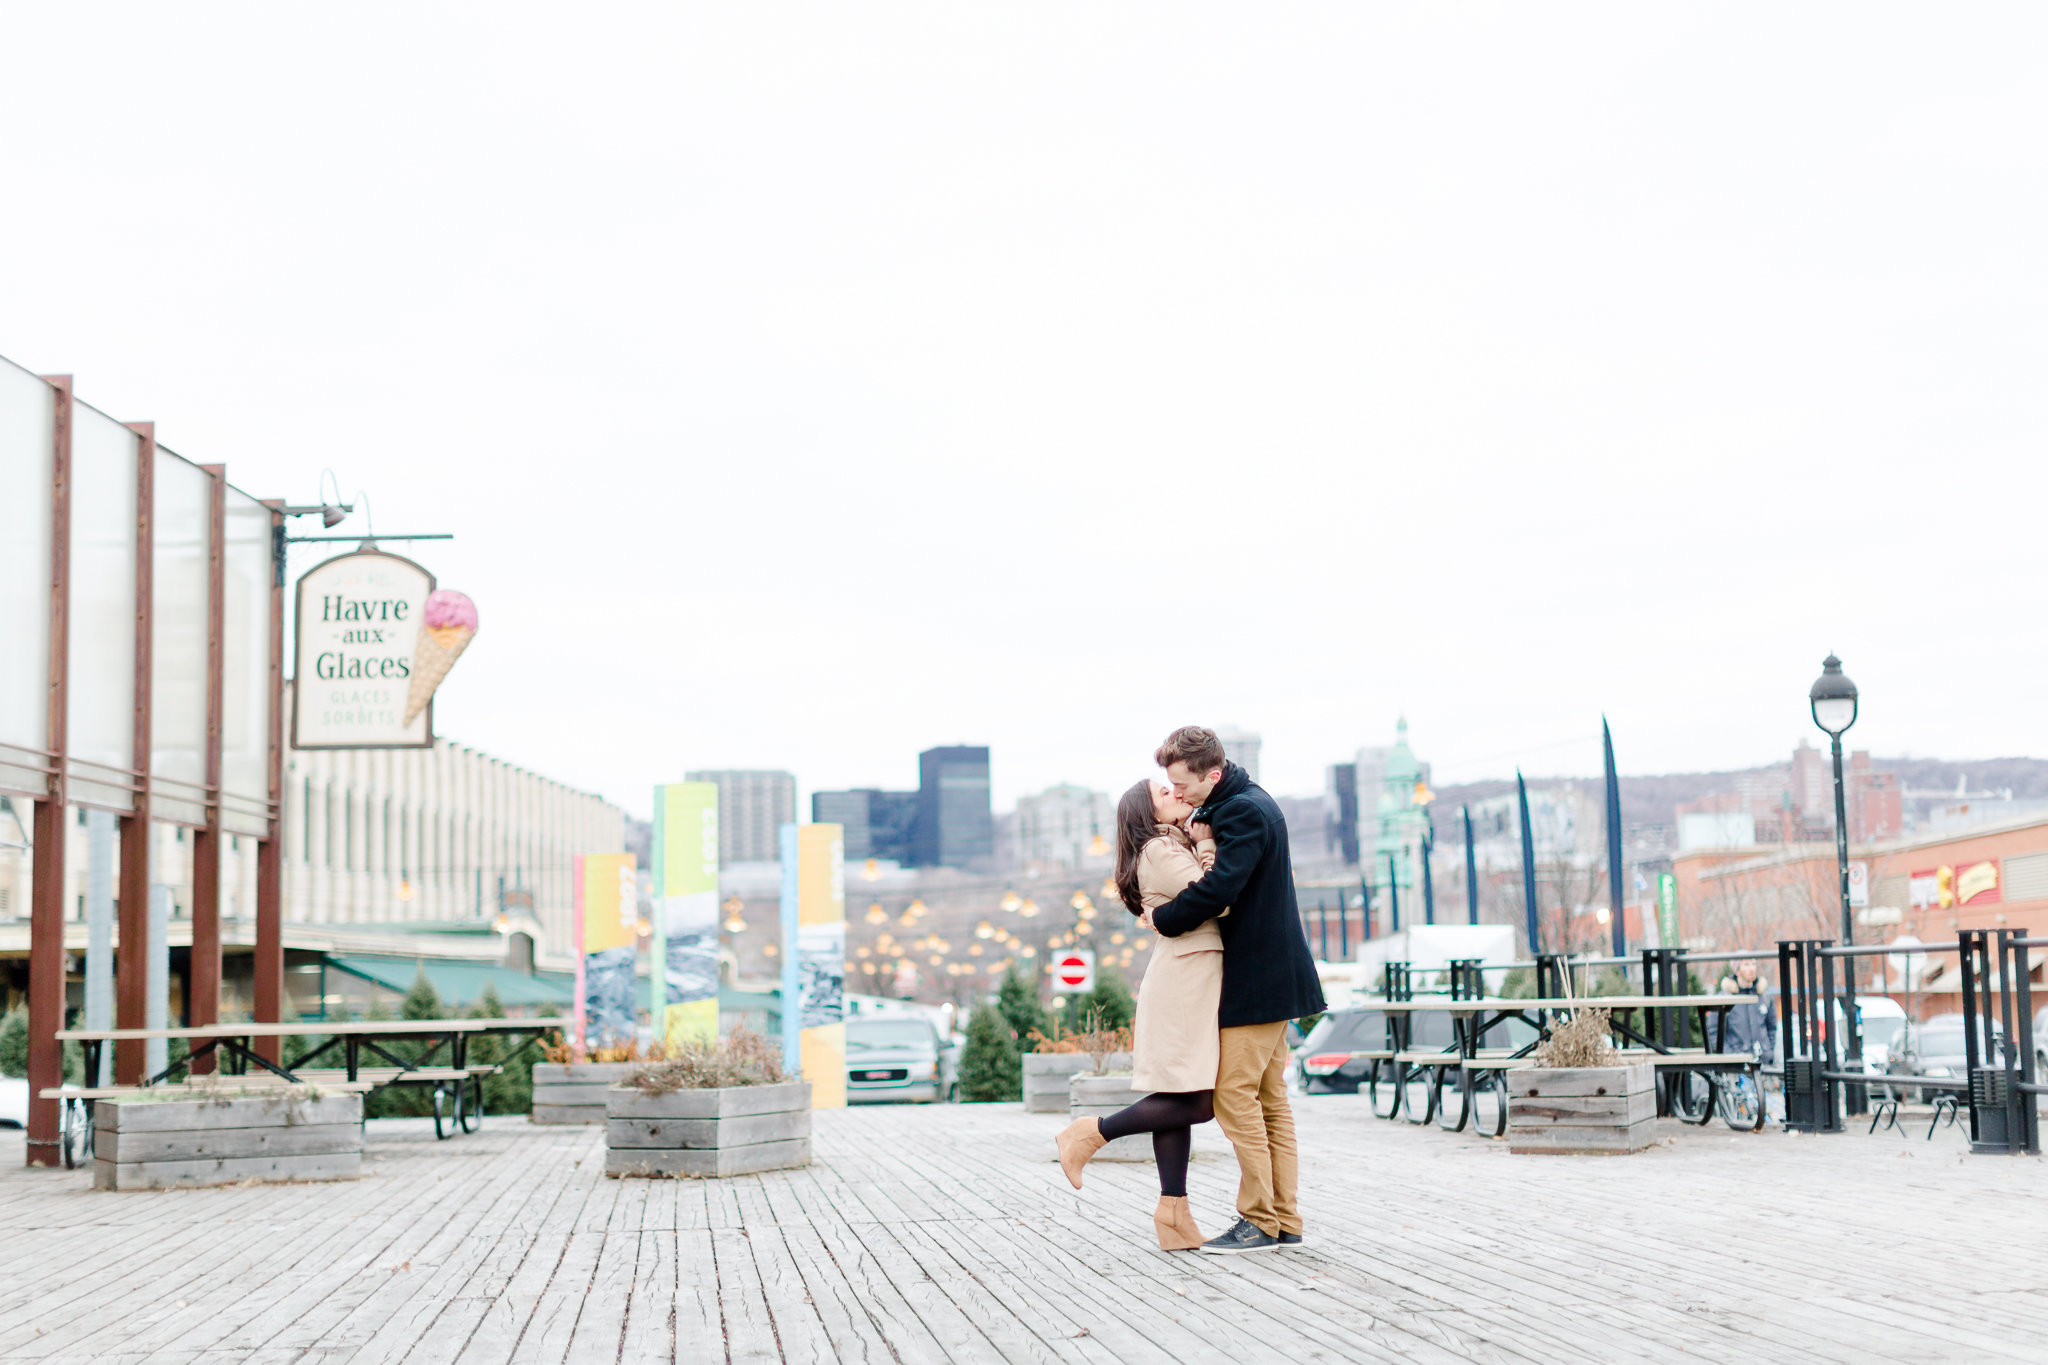 photographe-montreal-seance-fiancailles-lisa-renault-photographie-montreal-photographer-engagement-session-18